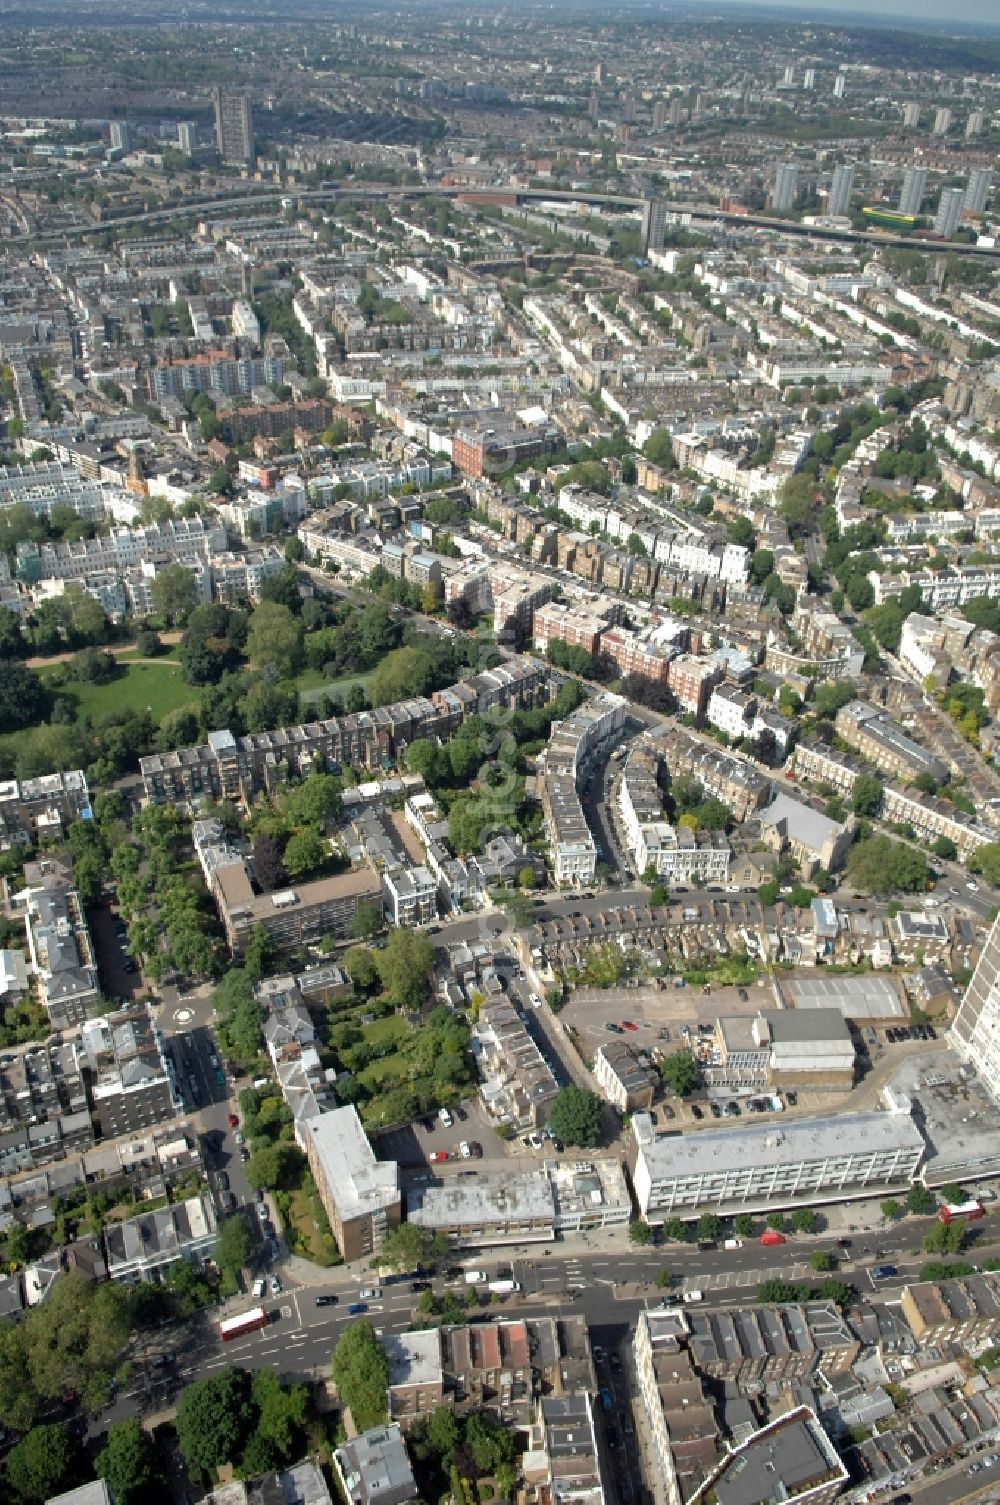 Aerial image London - View of Notting Hill in the district of Kensington and Chelsea in London in the counter Greater London in the UK